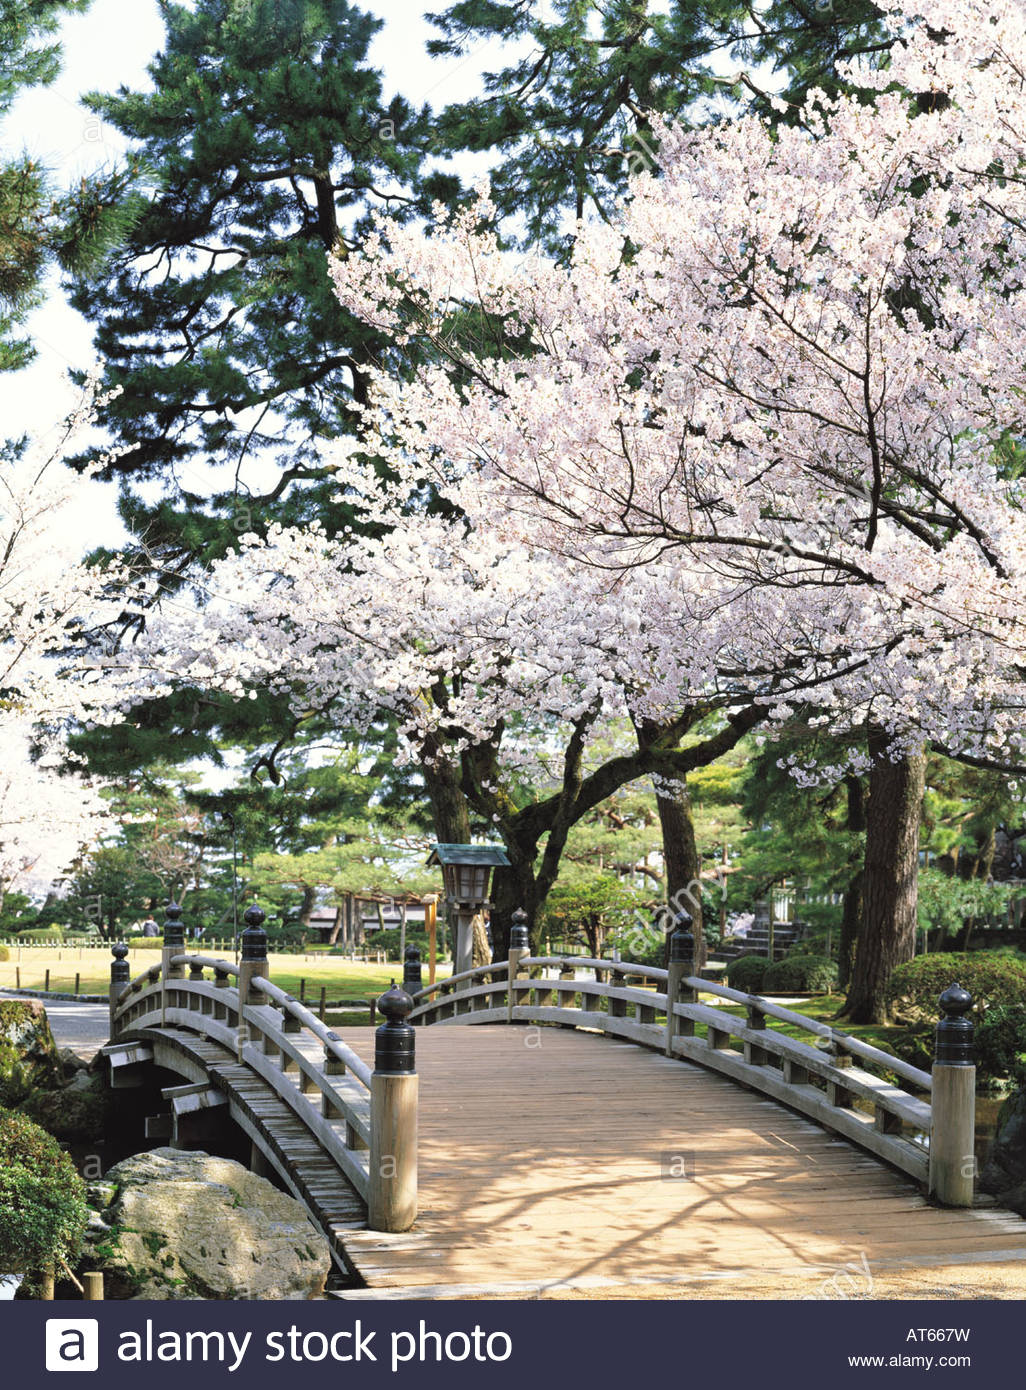 garden cherry blossoms hana mi bridge kanazawa ishikawa japan download japanese garden cherry blossom bridge - Japanese Garden Cherry Blossom Bridge